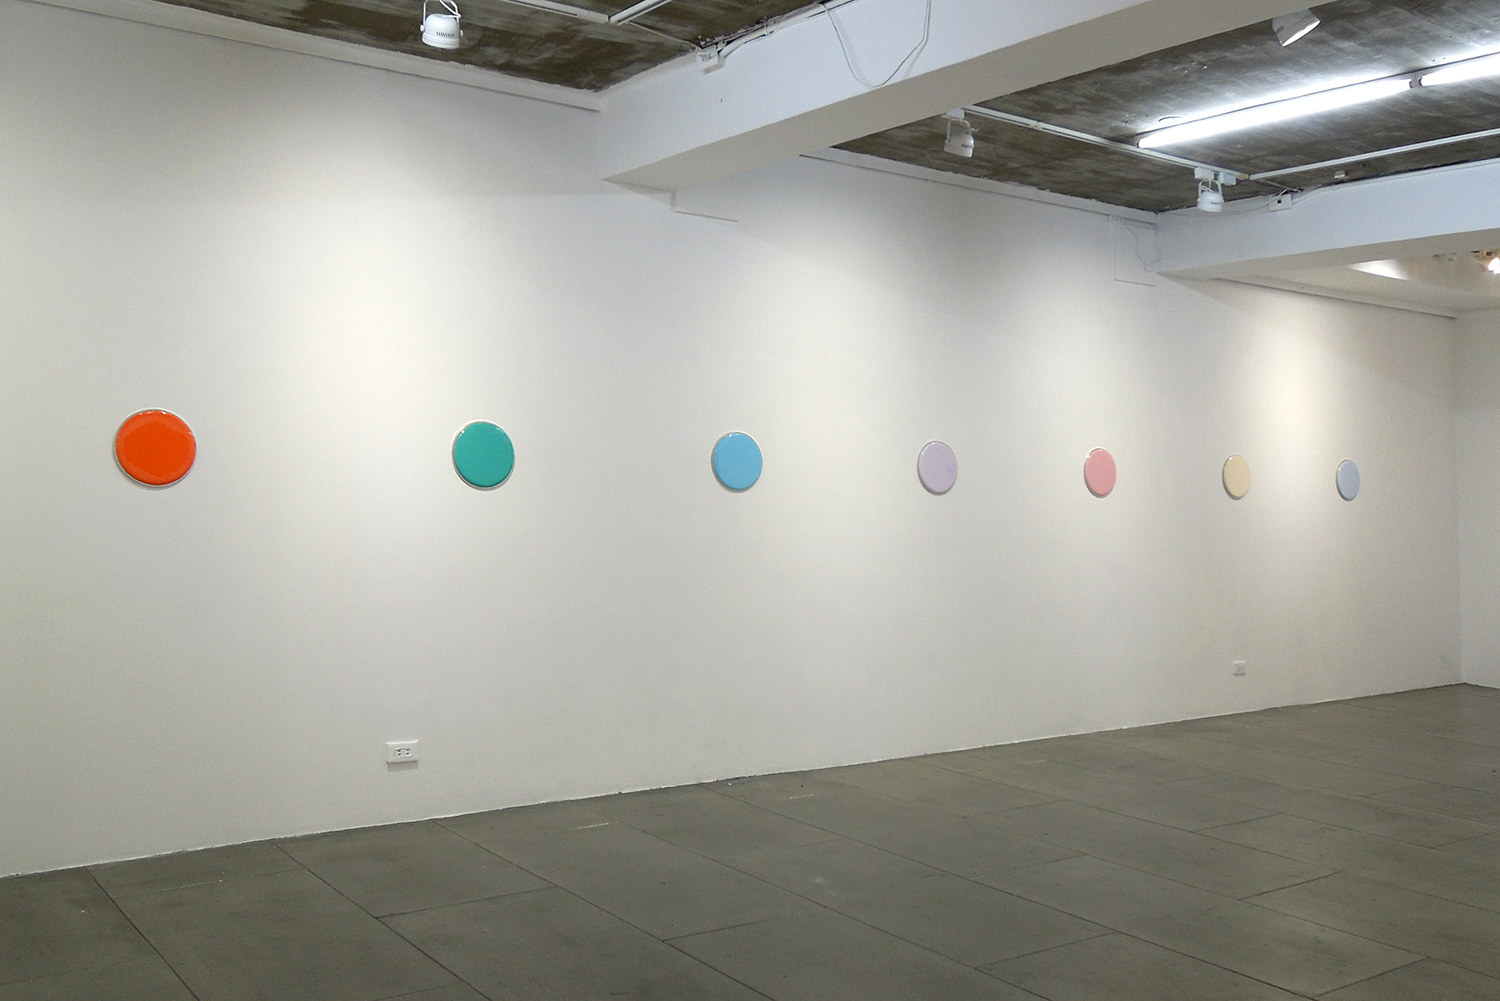 Installation View: Acrylic on resin series<br>267 mm diameter|2018 each